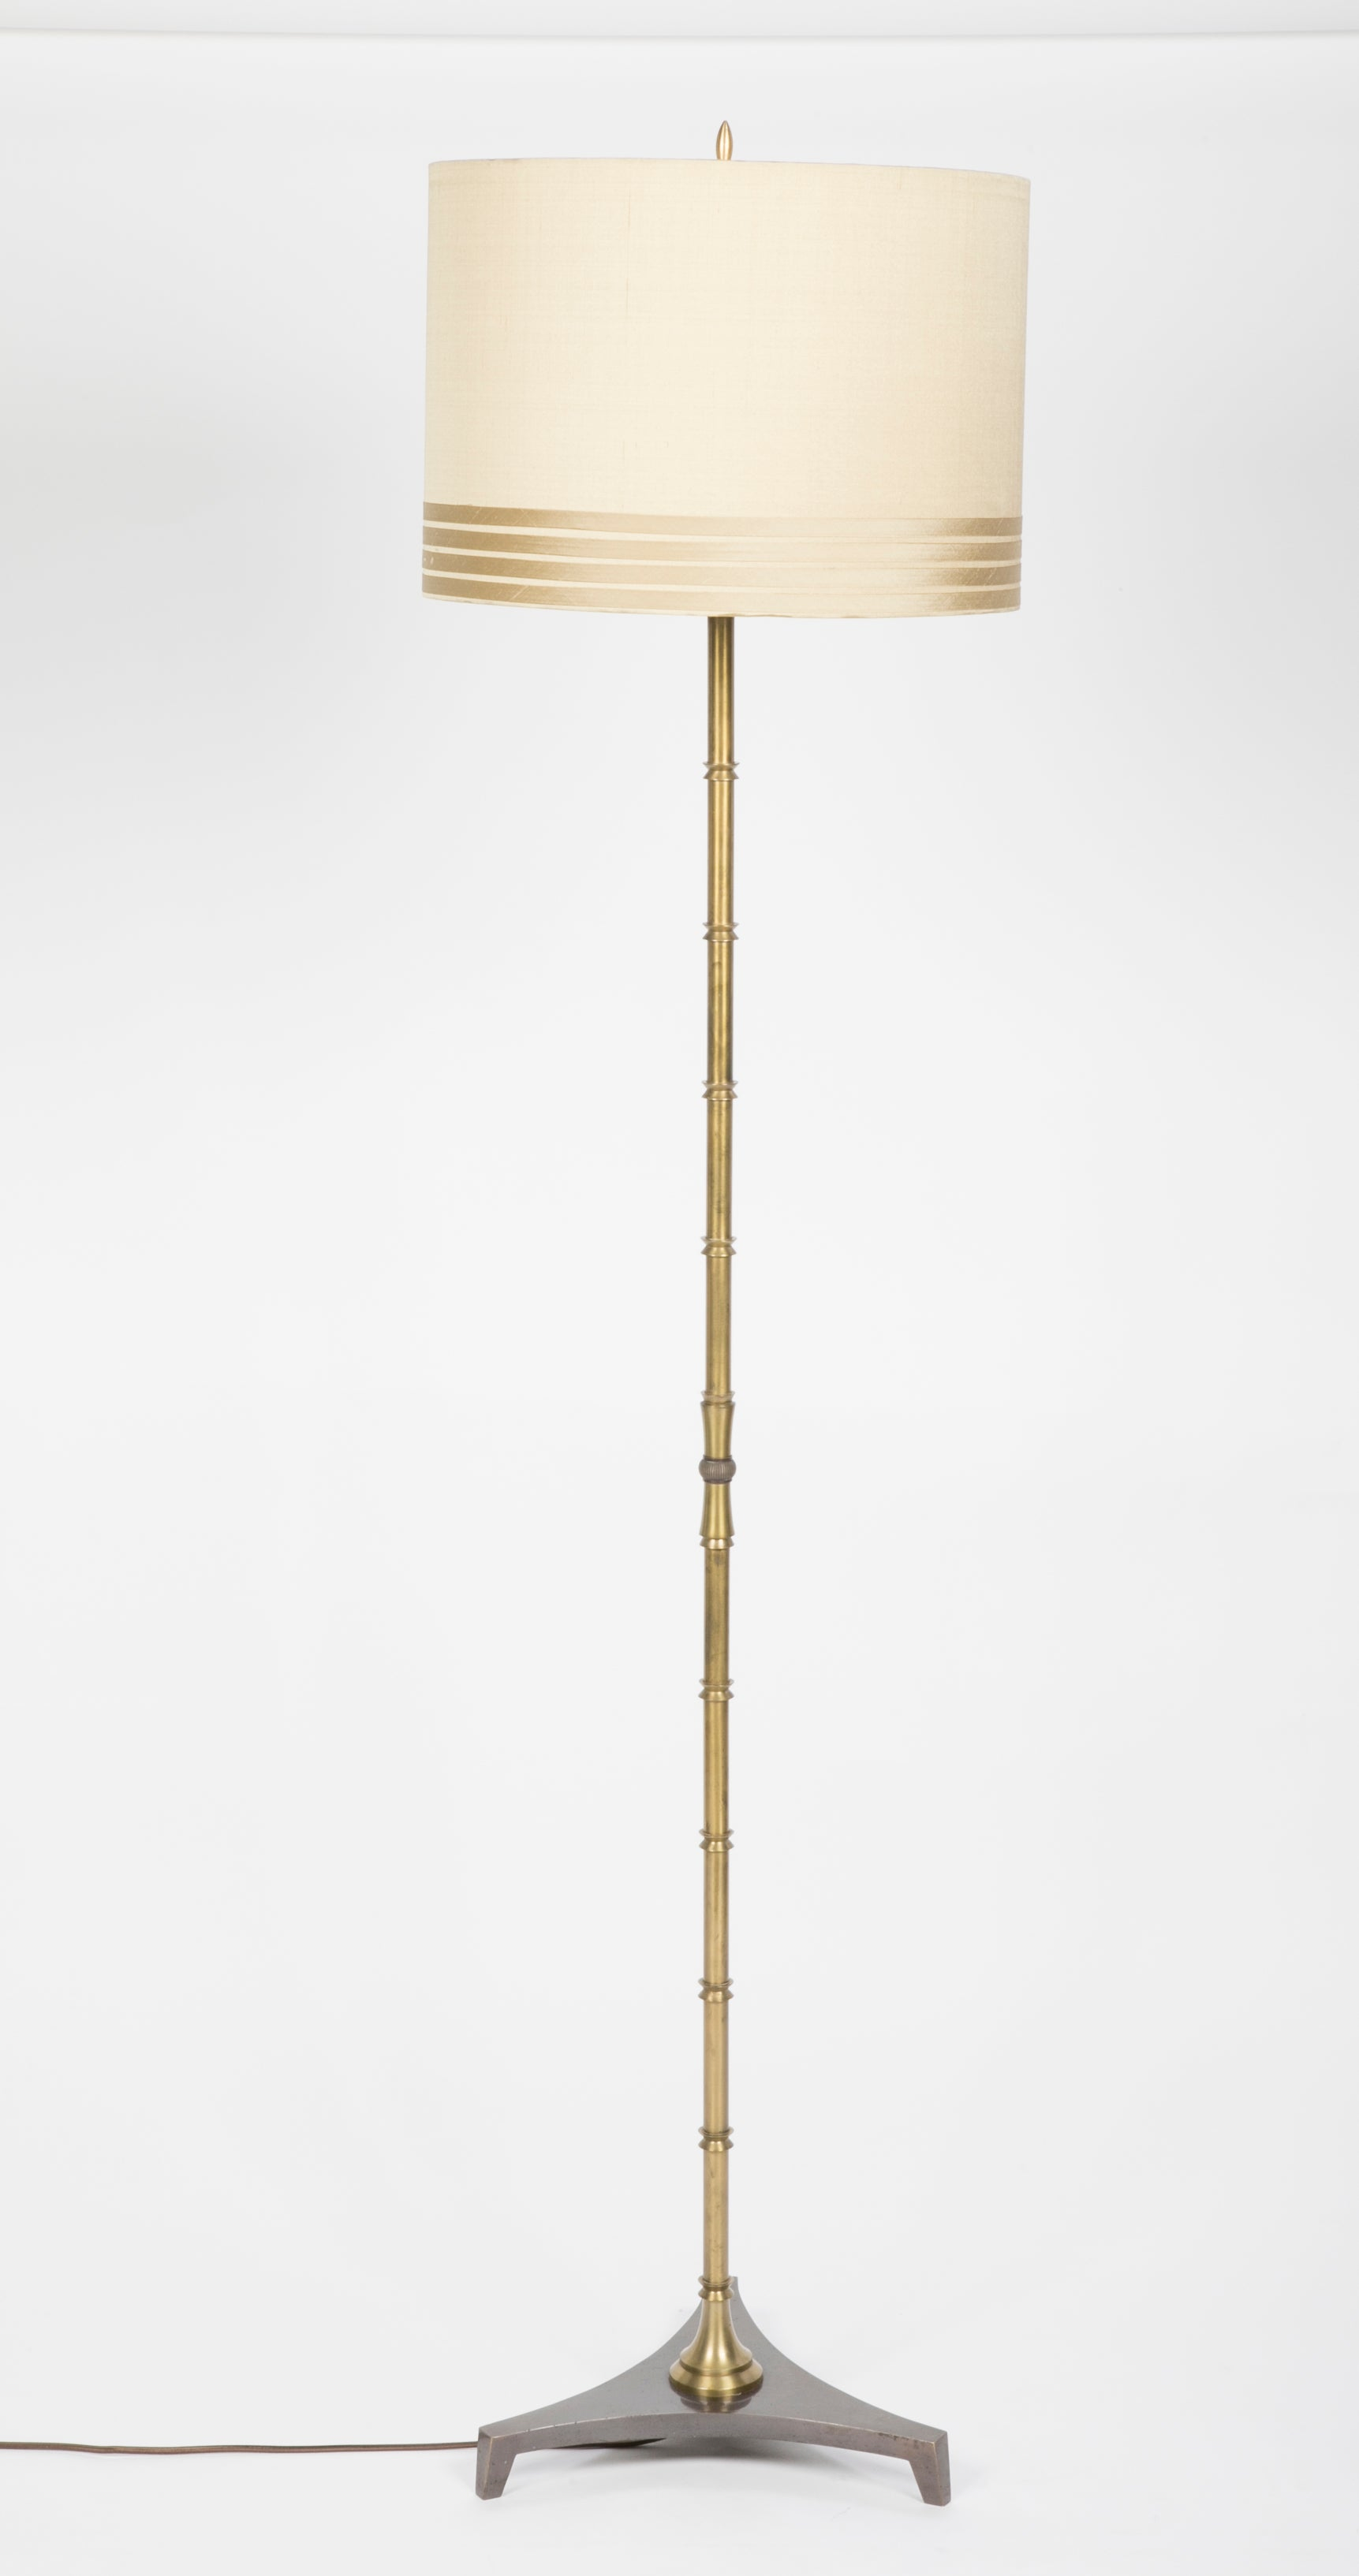 A Machined Bronze Faux Bamboo Inspired Floor lamp